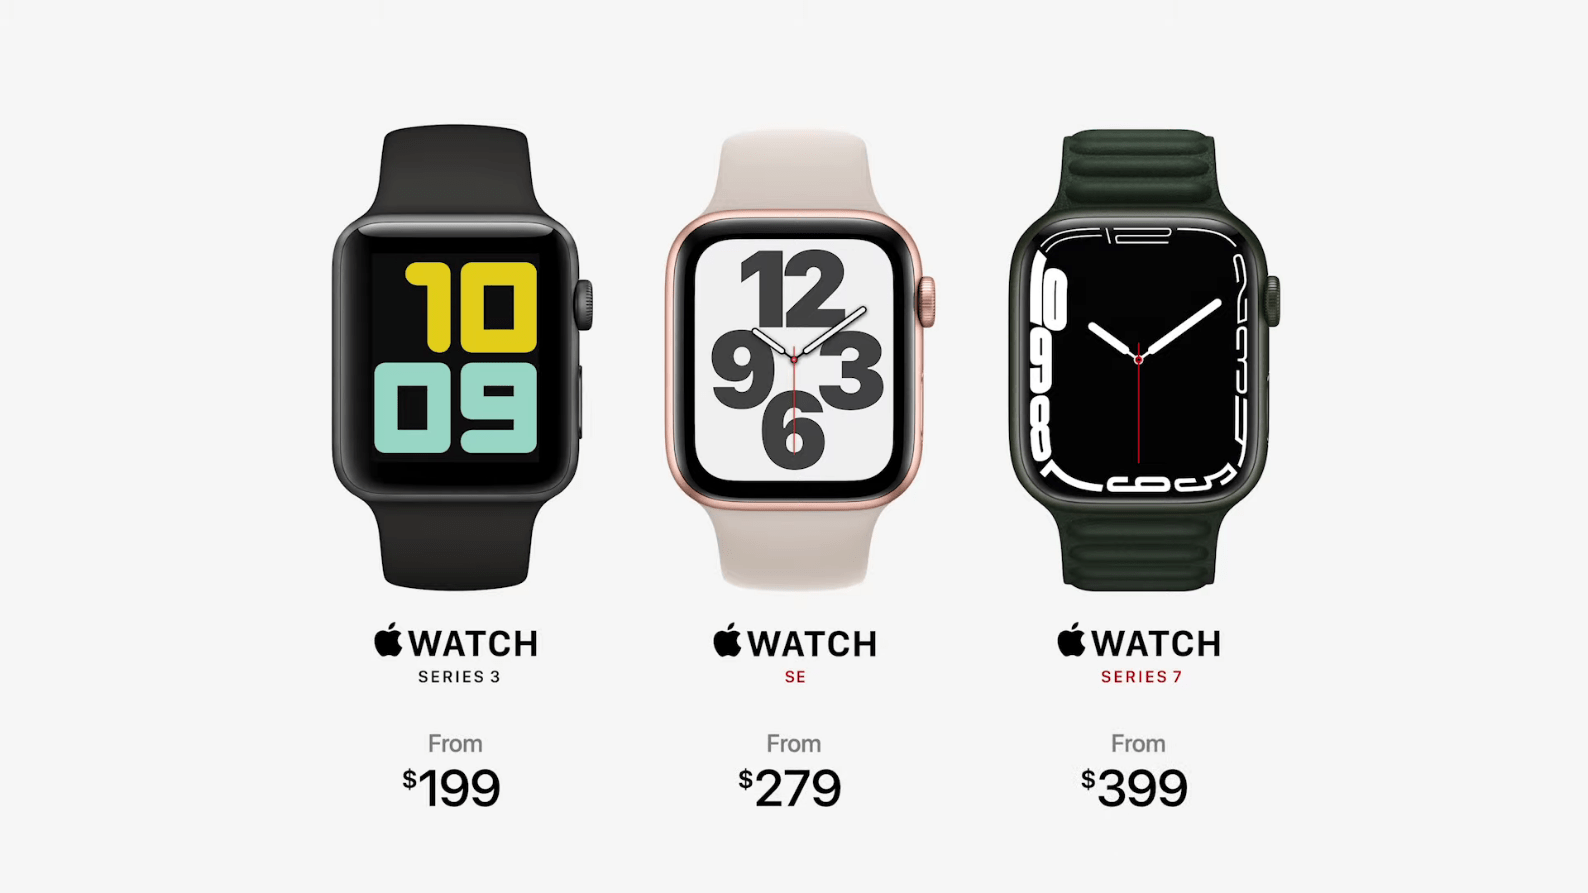 New Price line for Apple Watch Series